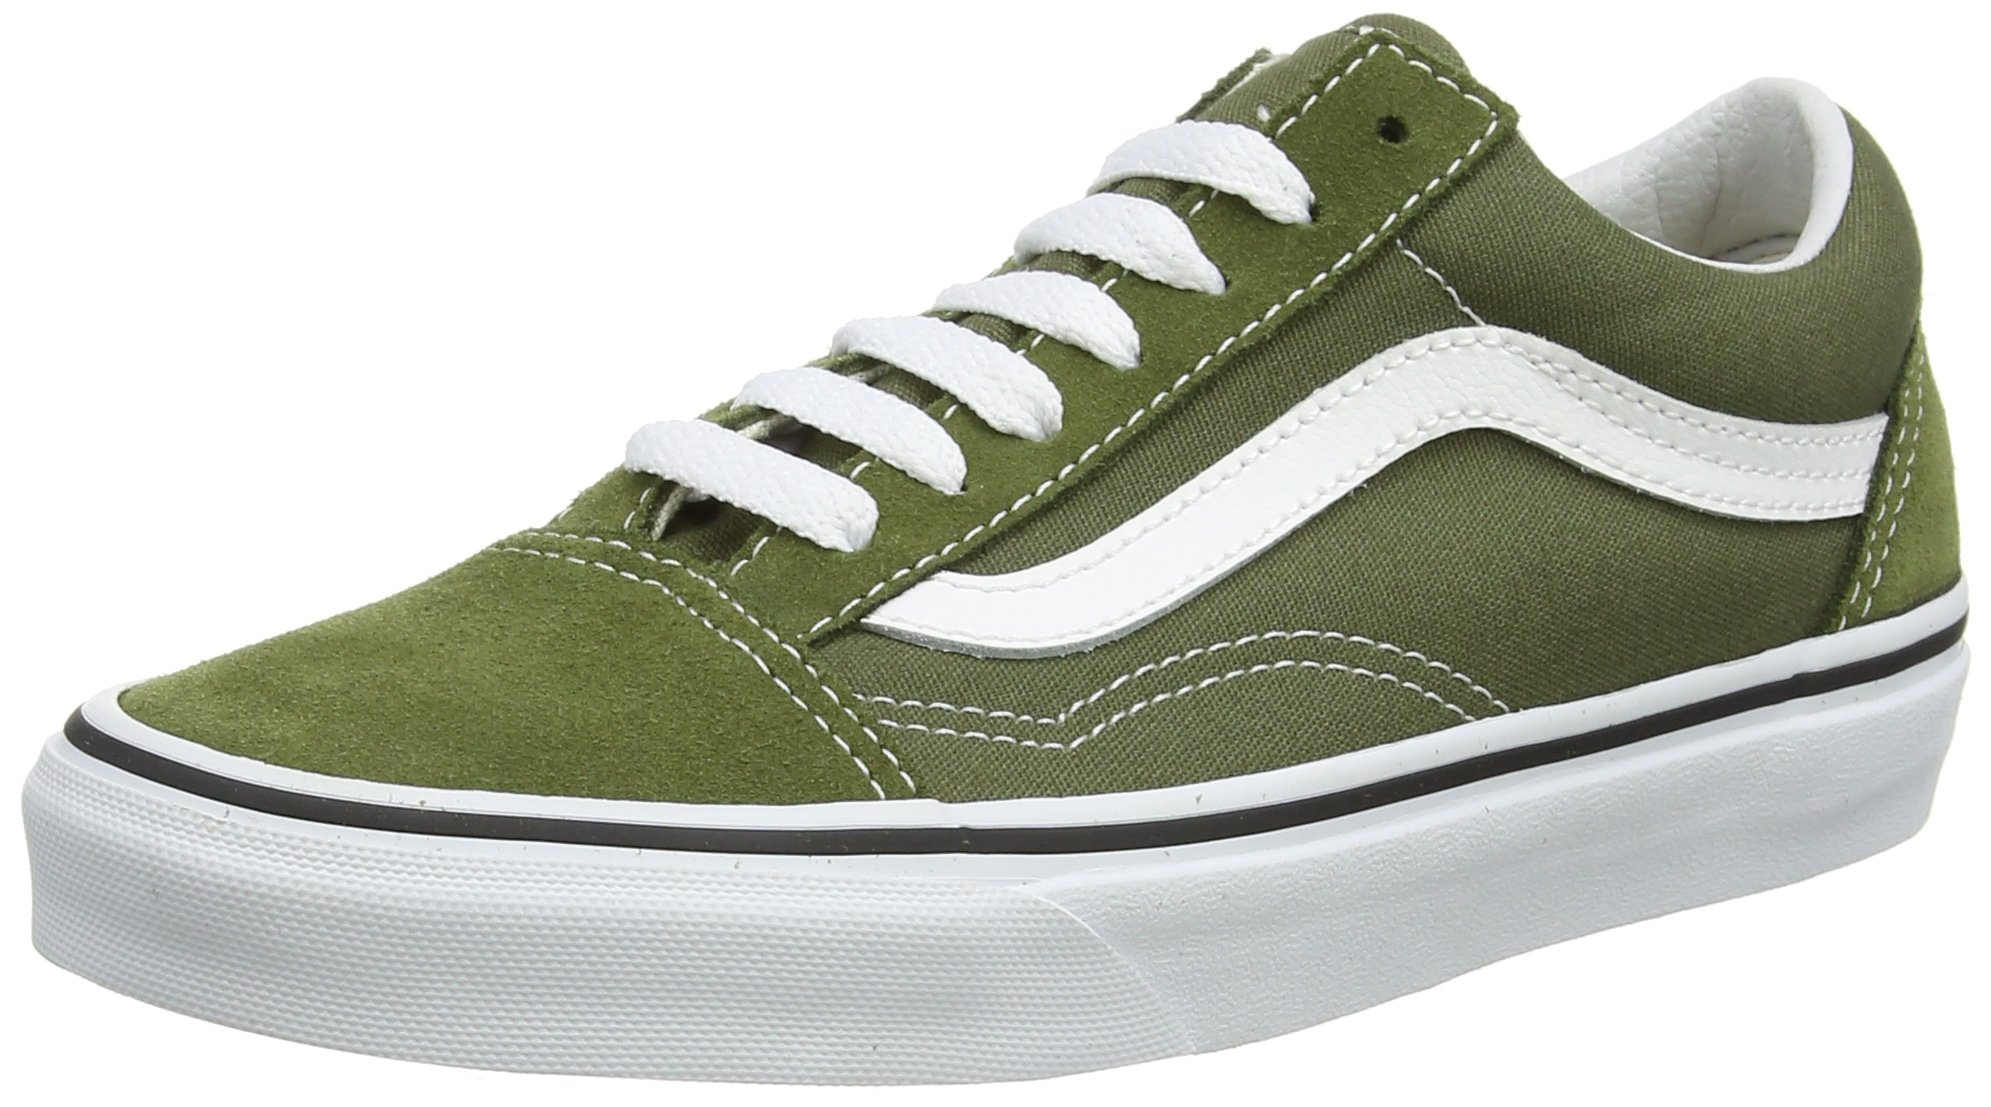 Vans Unisex Adults Old Skool Classic Suede/Canvas Sneakers, Green (Winter Moss/True White), 9 UK (43 EU)